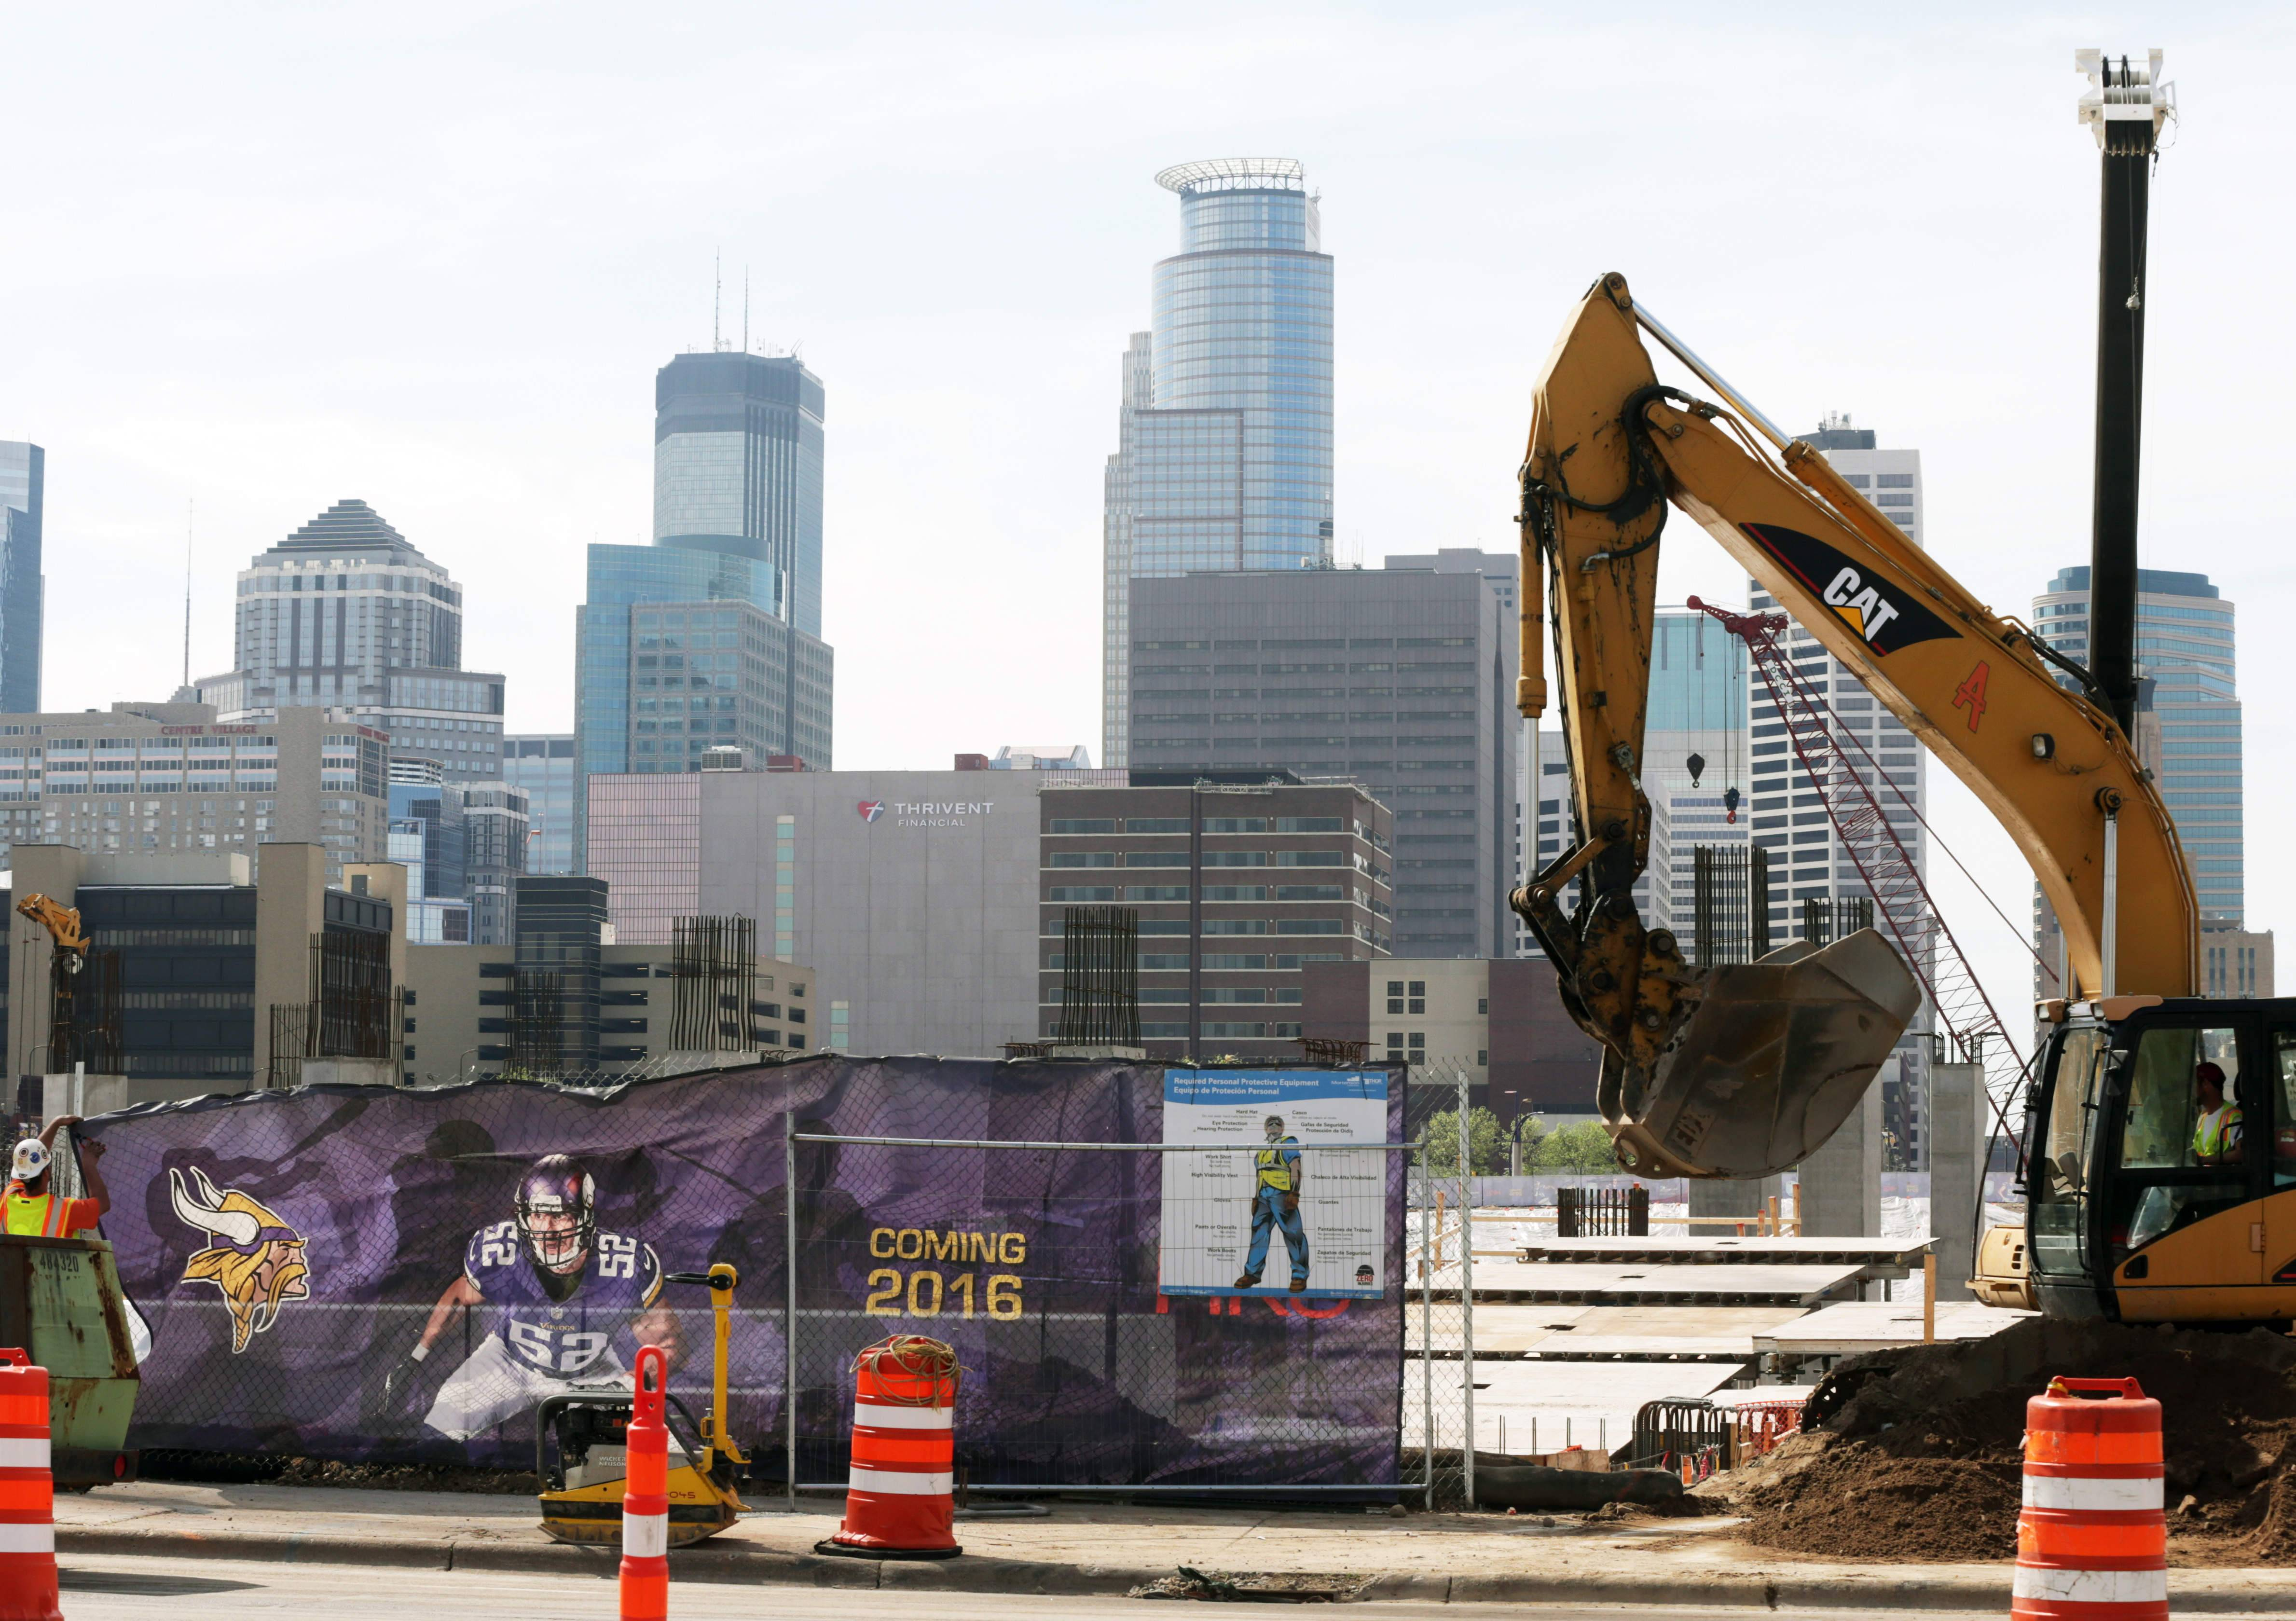 The Minneapolis skyline rises in the background as work continues Tuesday on the new Minnesota Vikings NFL football stadium in Minneapolis. Minneapolis will host the 2018 Super Bowl after a vote by owners Tuesday rewarded the city for its new stadium deal